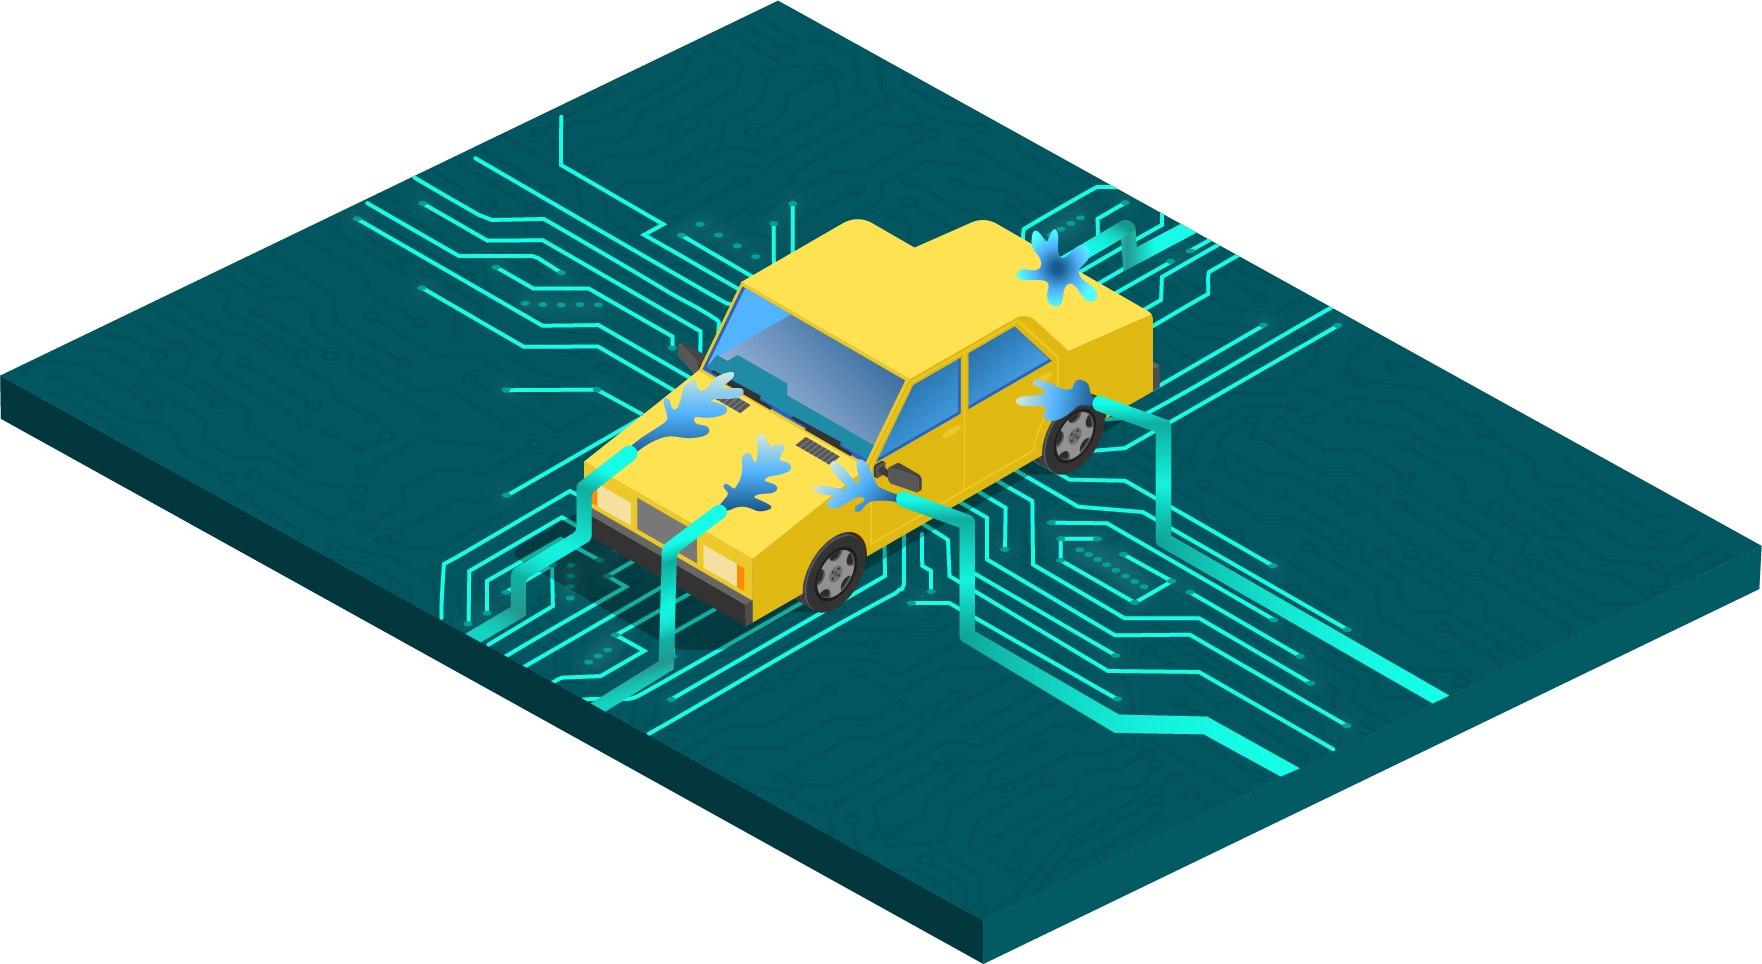 Processor multi-core carwash analogy - What is the benefit of multi-core processors?